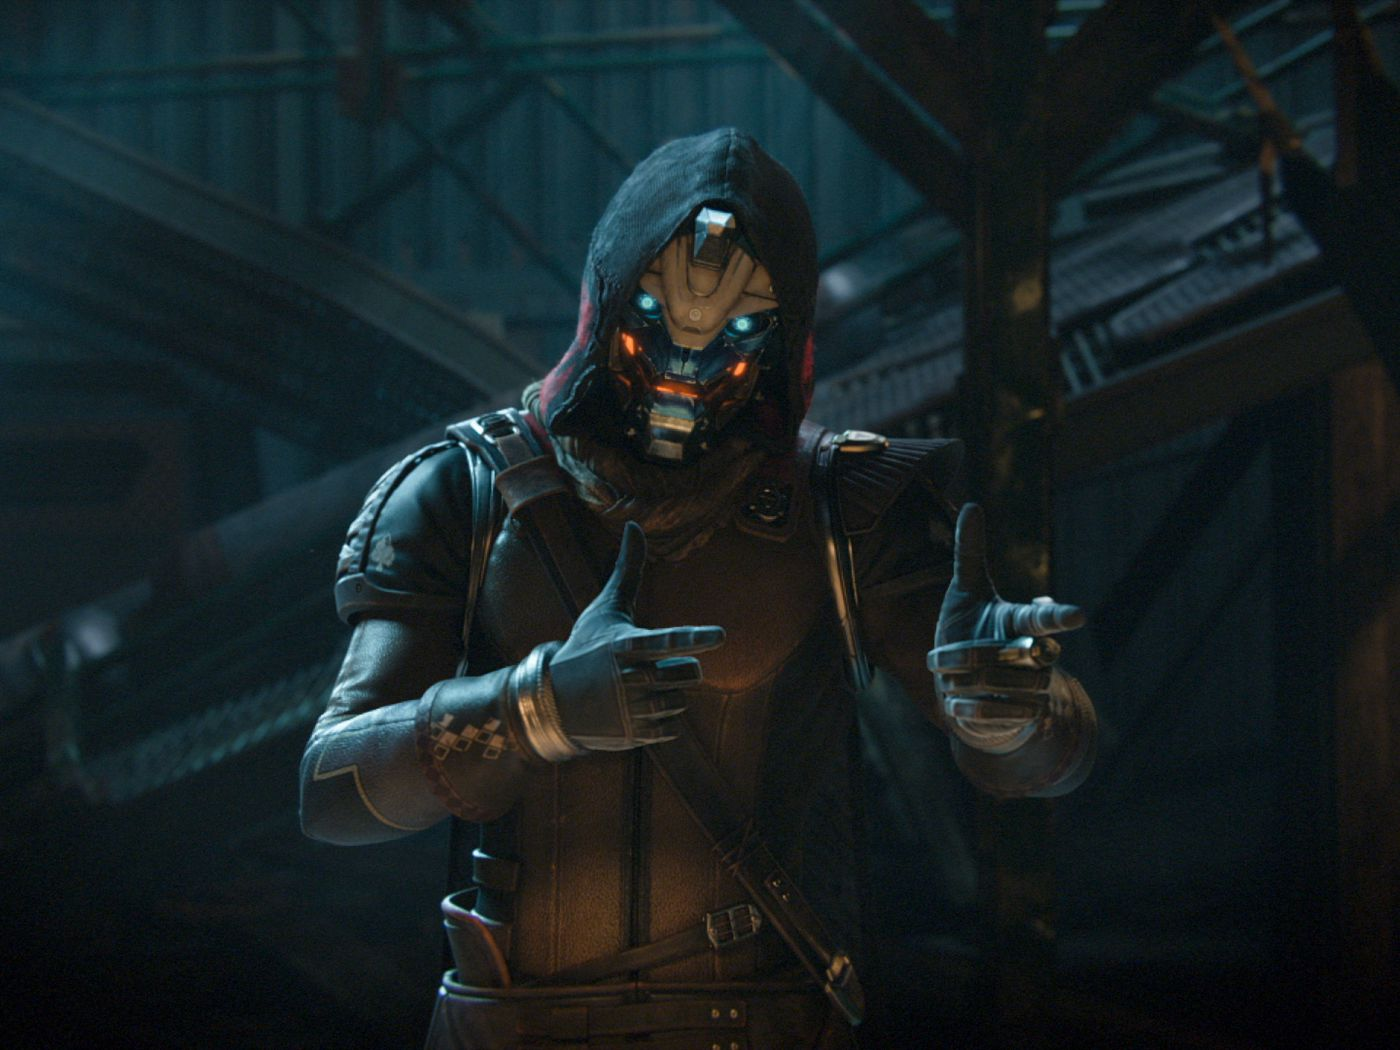 Destiny 2 Developers Just Released New Footage Of The Death Of